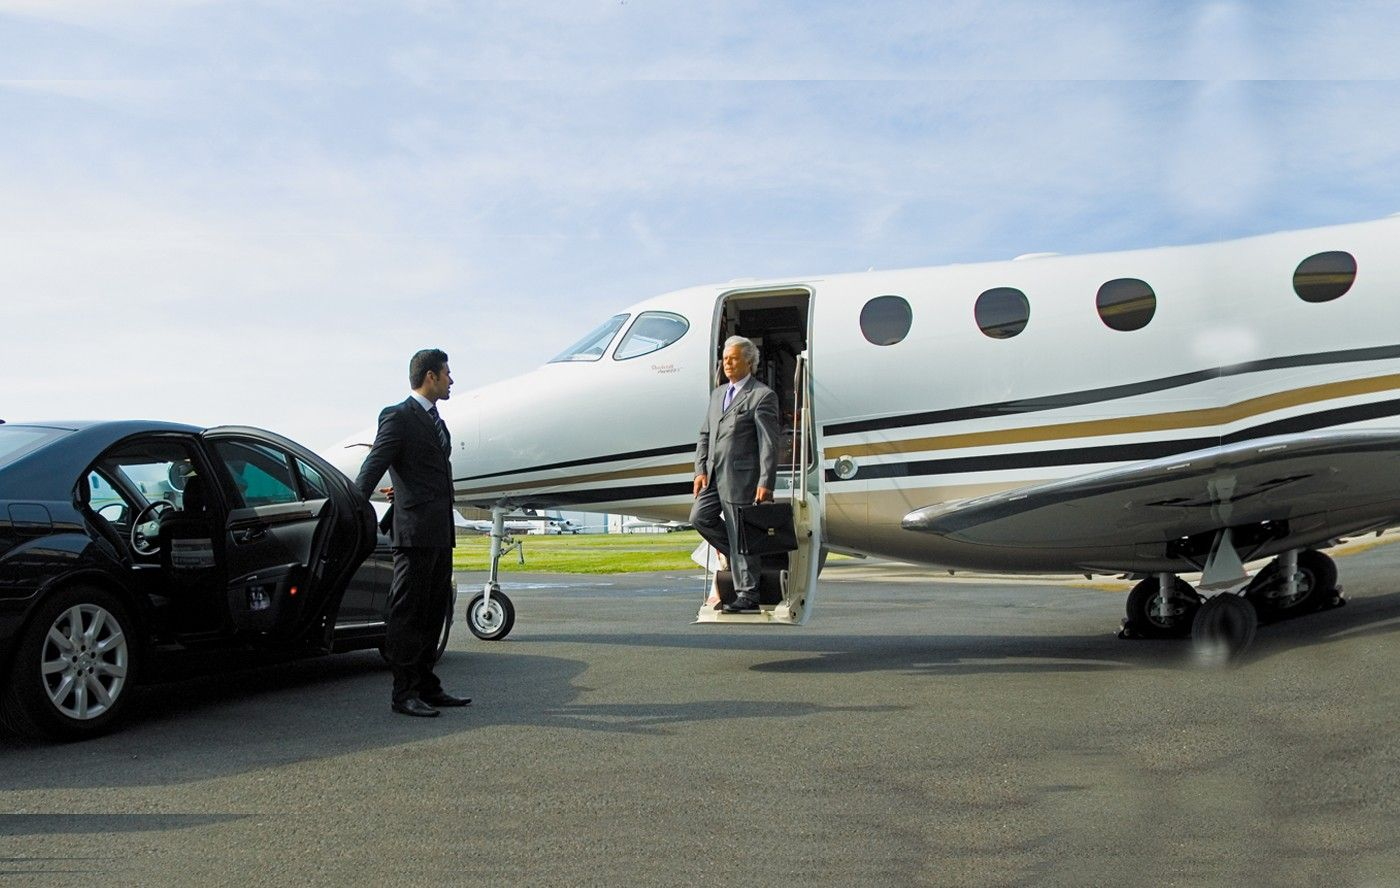 Boston Airport Limo Service (With images) Airport car